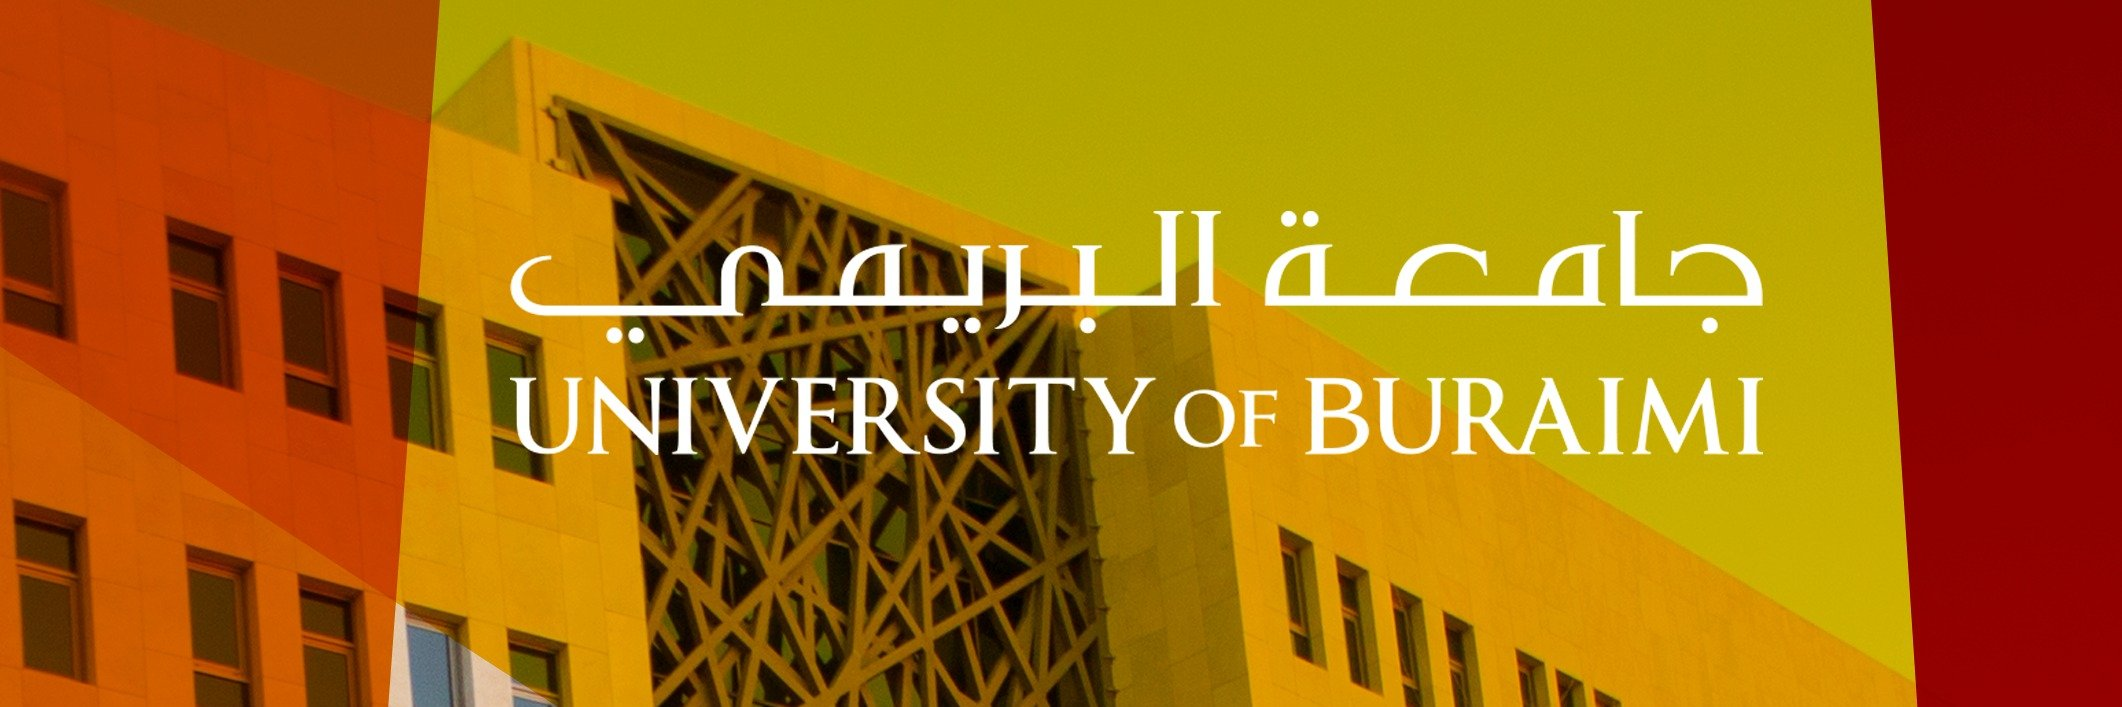 University of Buraimi's official Twitter account